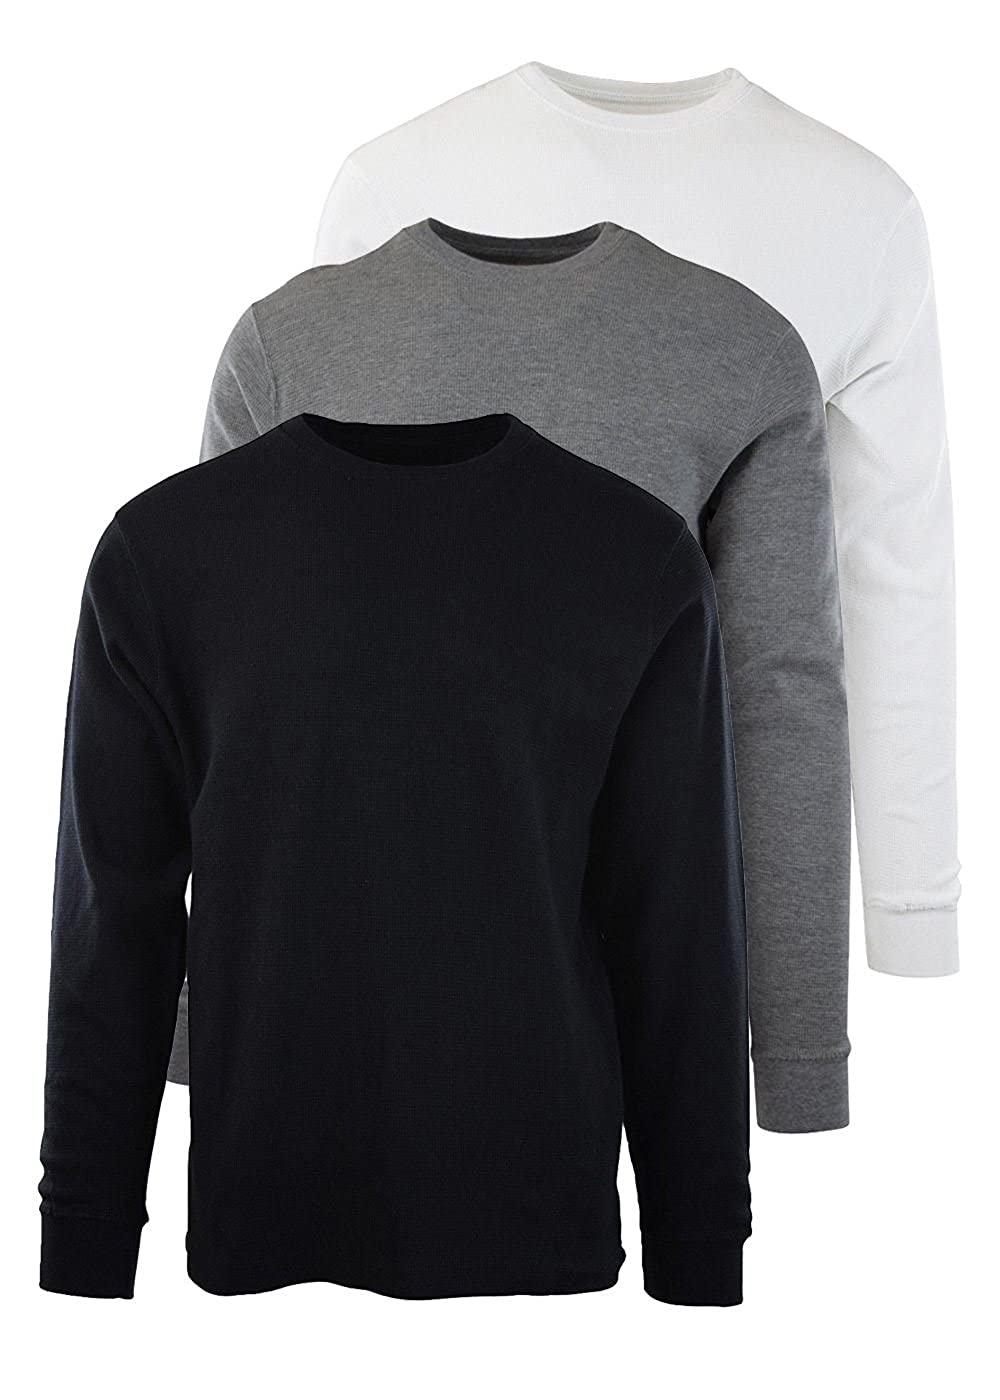 Byn Dynasty Men's Thermal Lightweight T-Shirt 3-Pack Long Sleeve Waffle-Knit Crew Neck